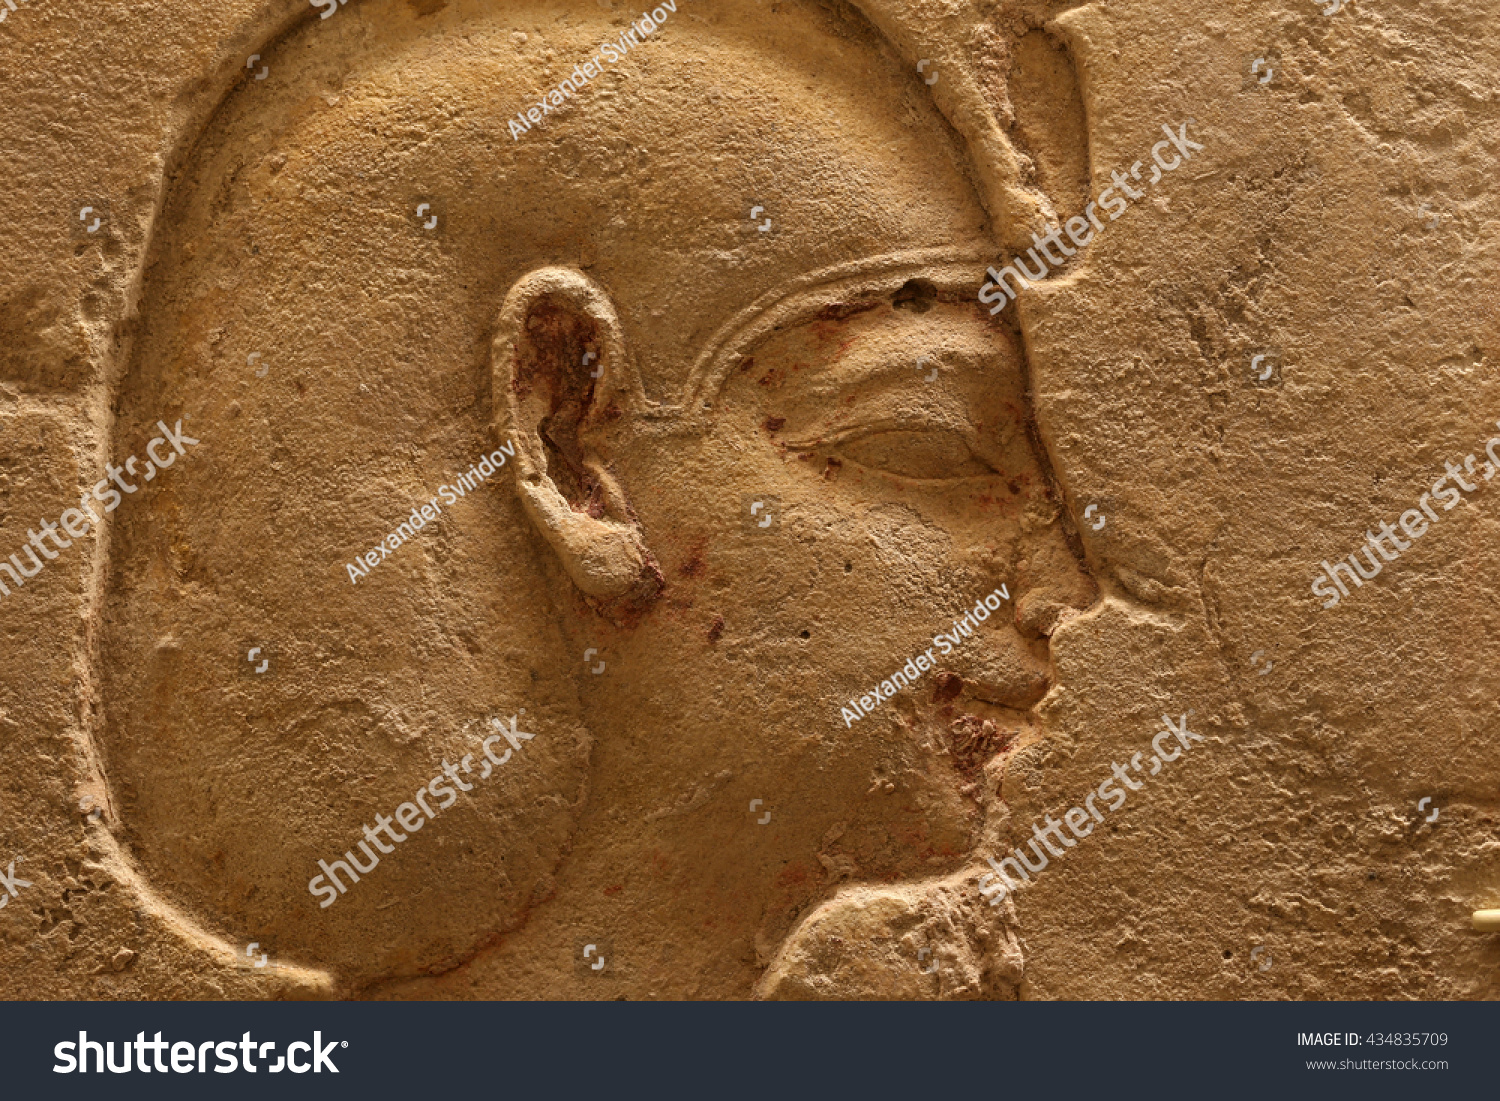 Ancient egyptian relief carving showing face stock photo